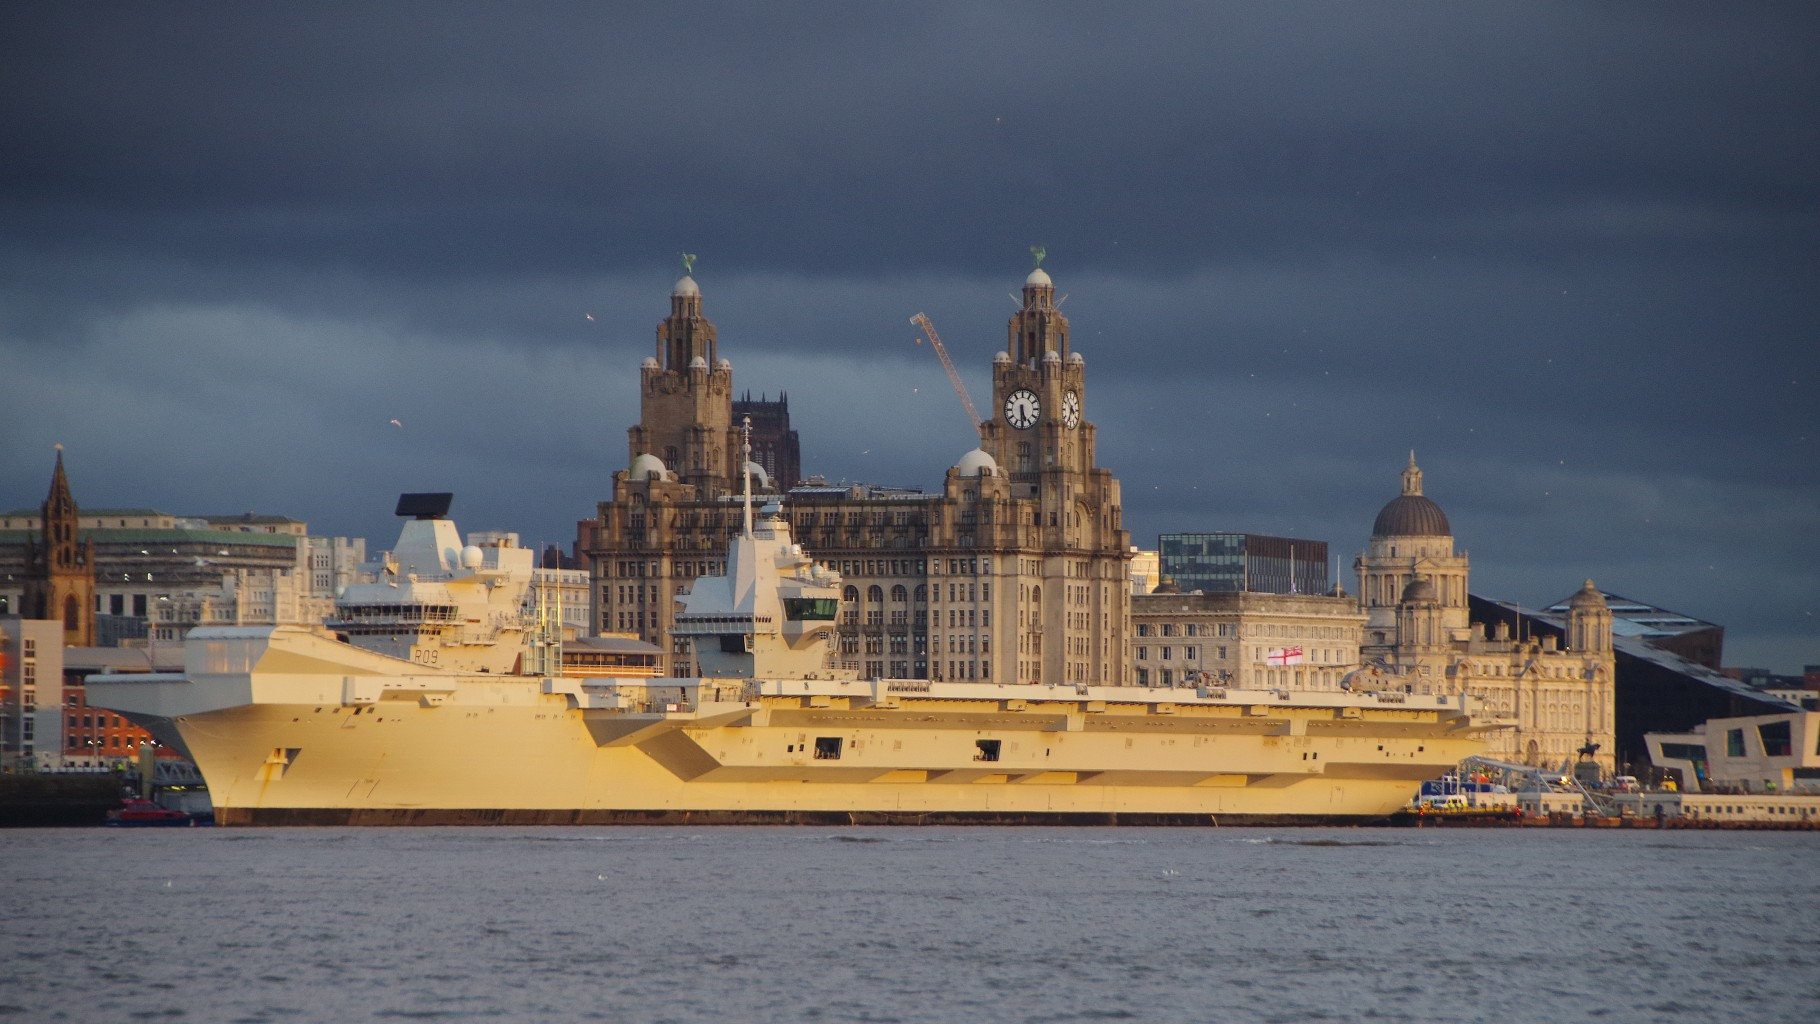 HMS Prince of Wales docked in front of the Liverbuildings